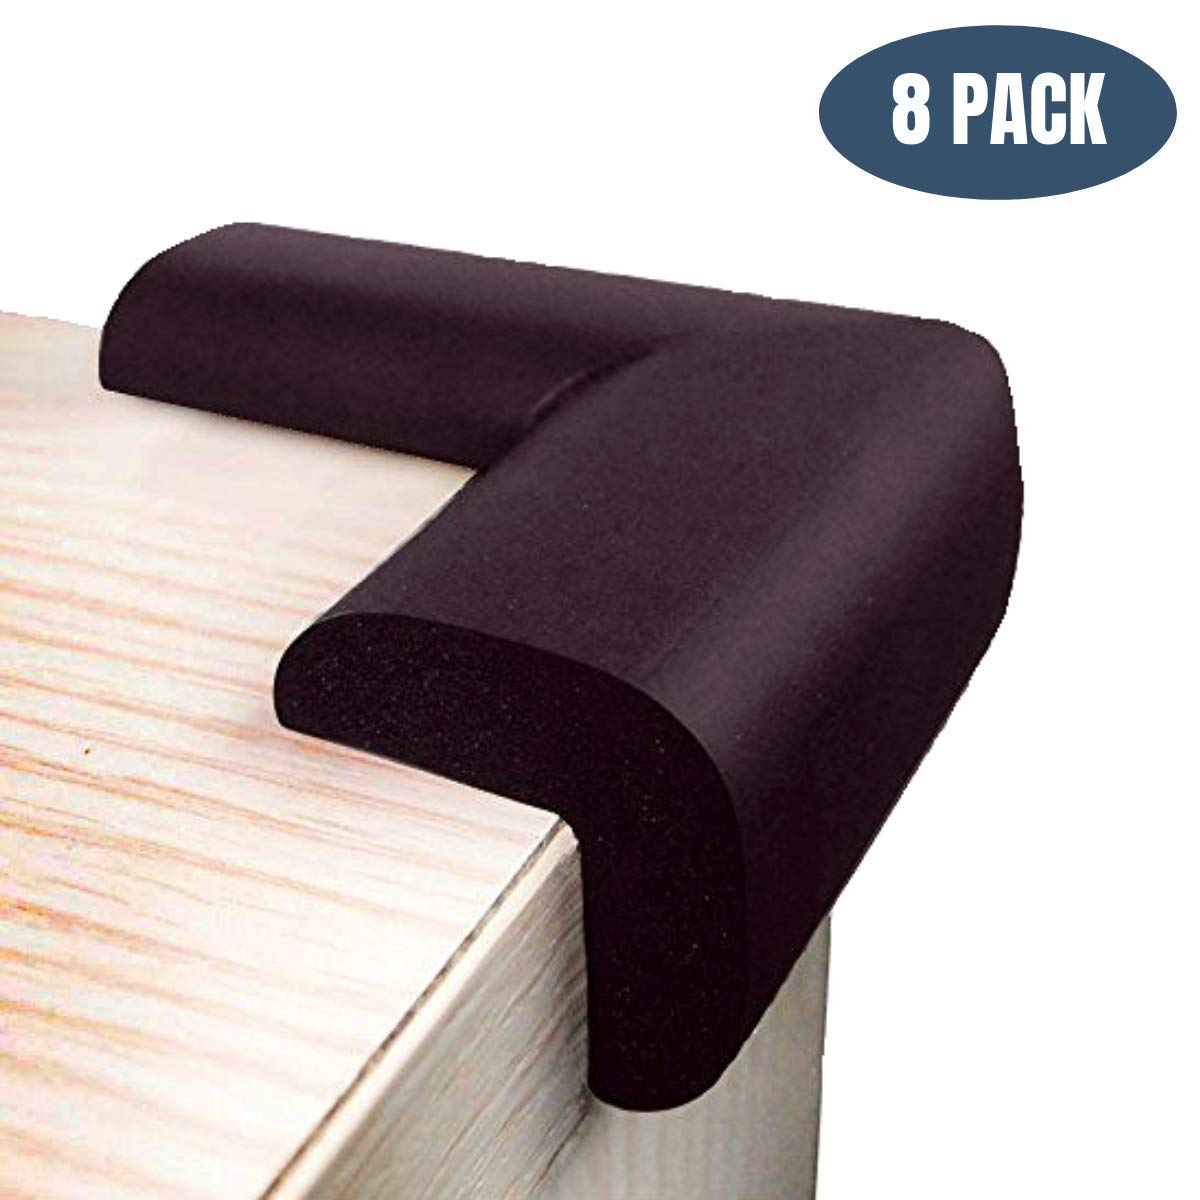 Foam Corner Protectors   Foam Caring Corner Guards by The Hamptons Baby   Safety Furniture Bumpers   Long Lasting, Pre-Applied Adhesive   Sharp Corner Cushions (Brown)